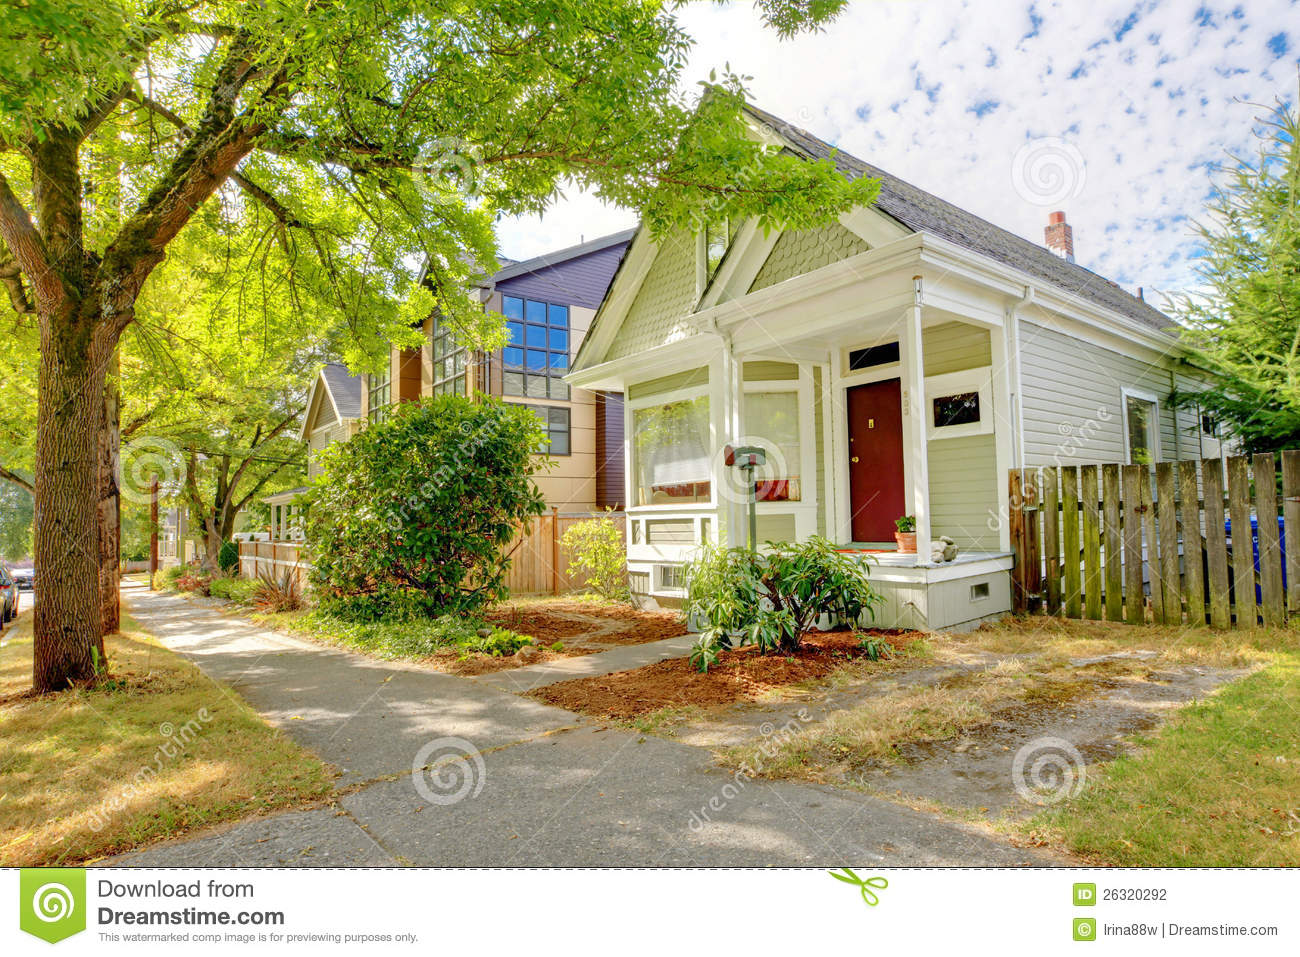 Small Cute Craftsman American House Stock Photo   Image Of Large, Door:  26320292